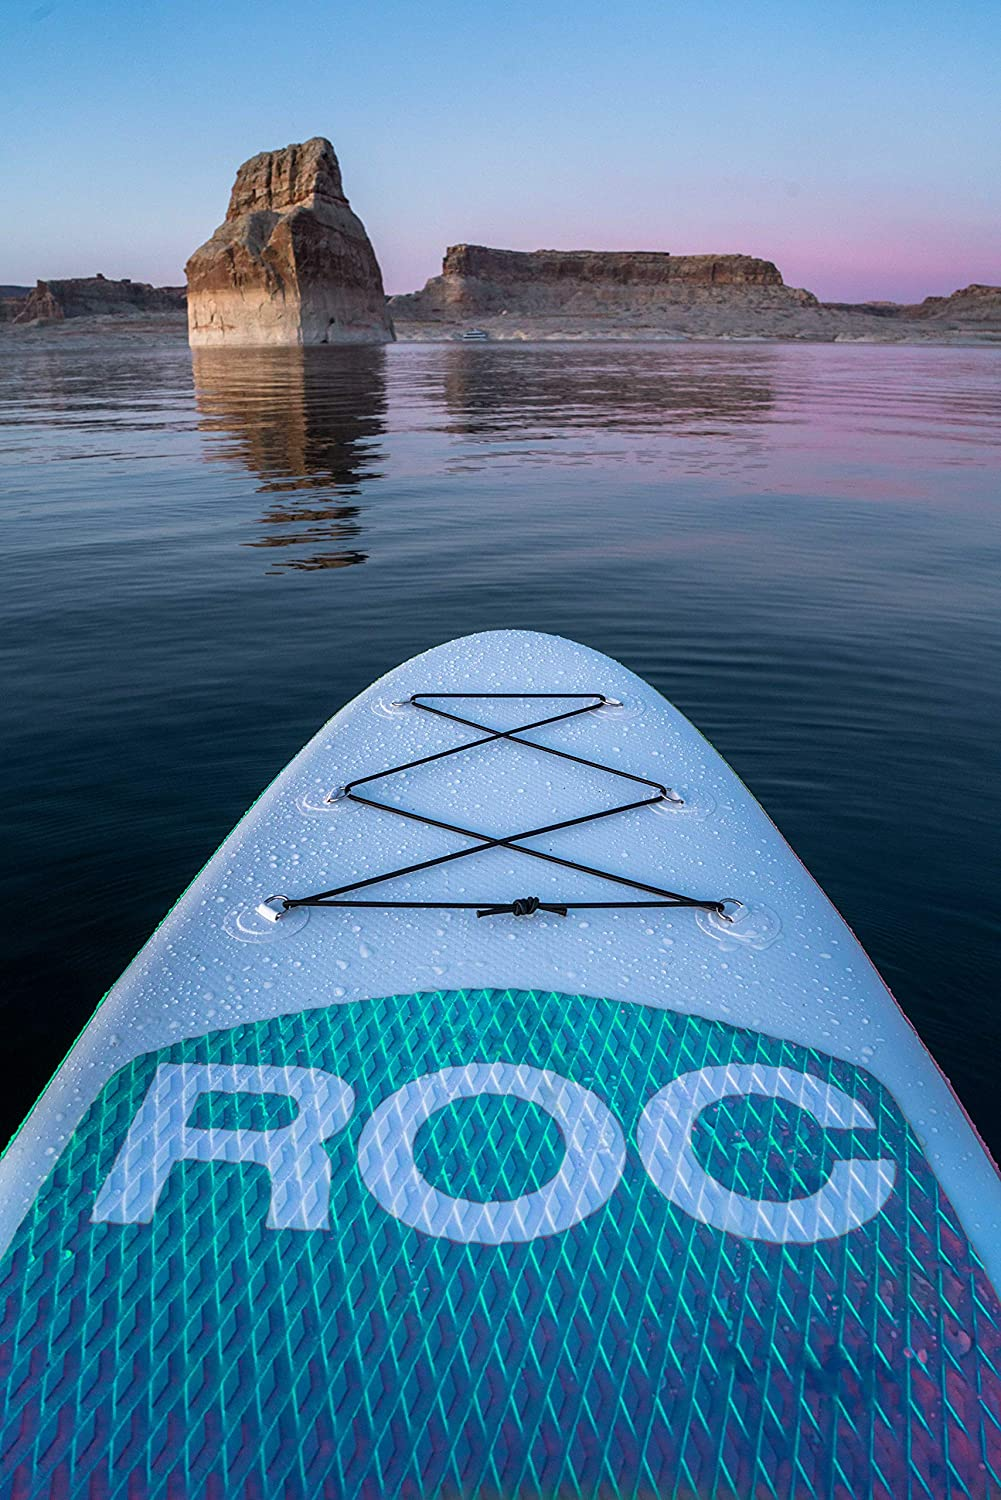 roc paddle board in the water